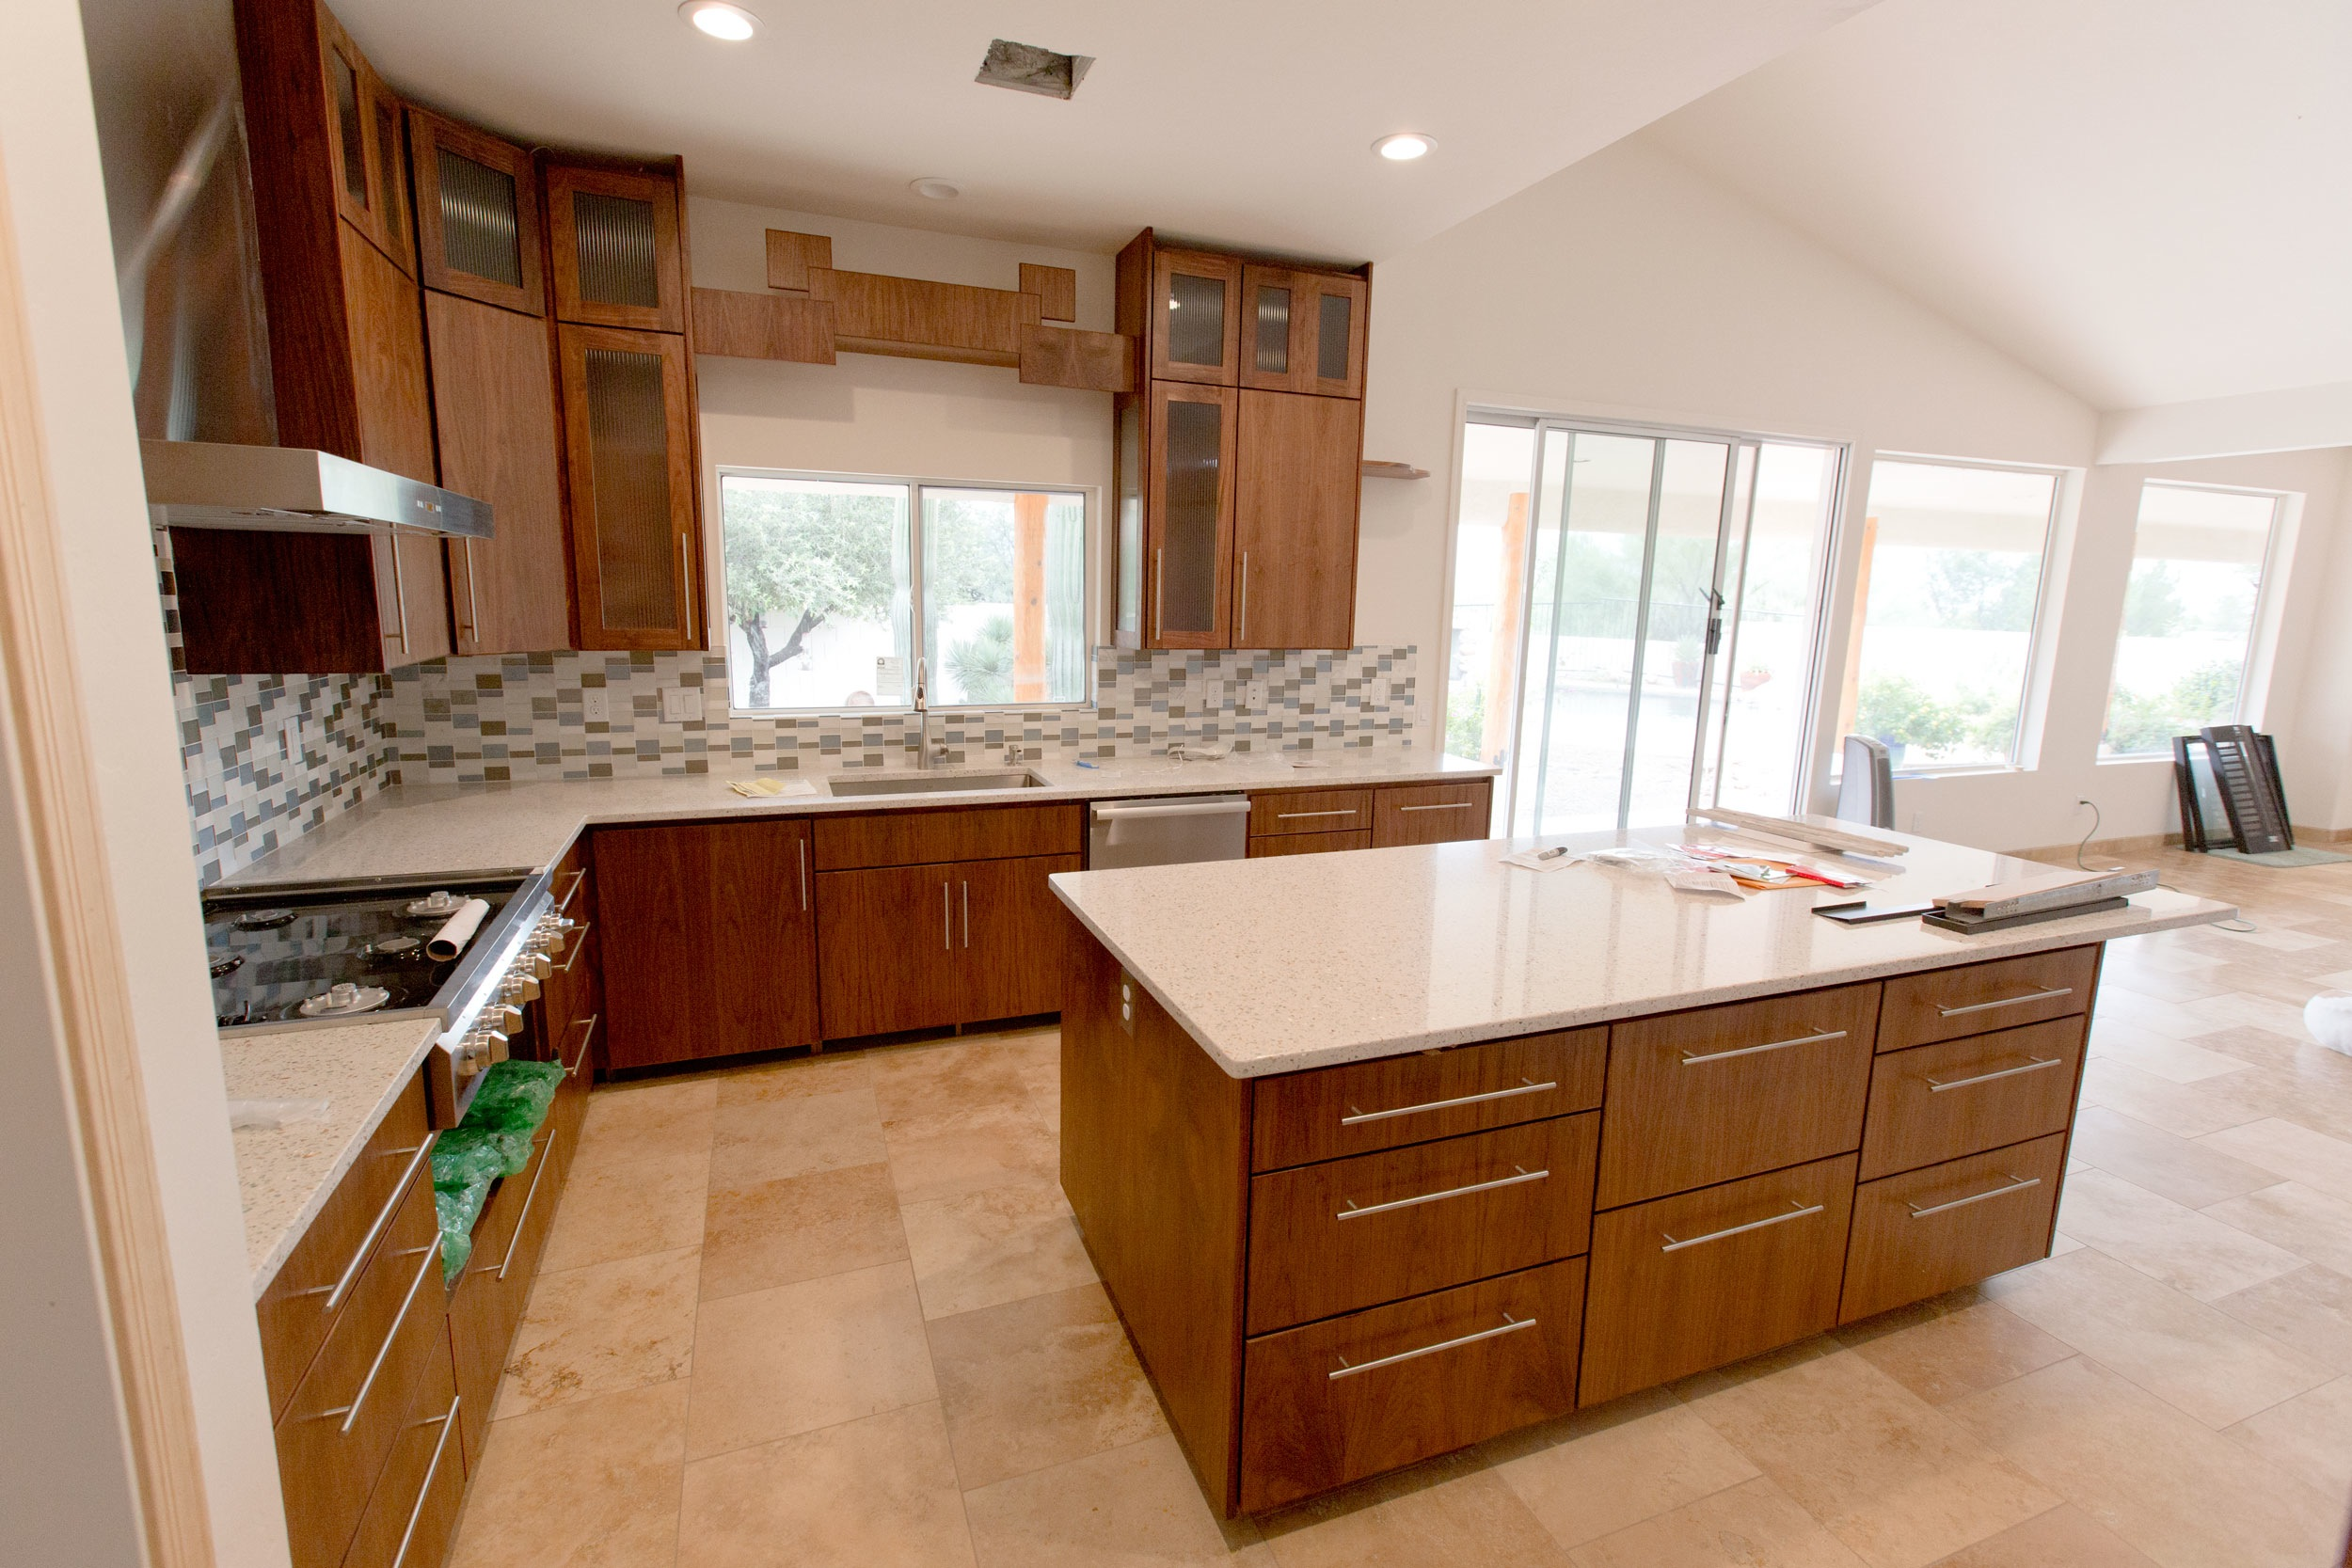 kitchen remodel tucson epoxy flooring in place architecture project photos